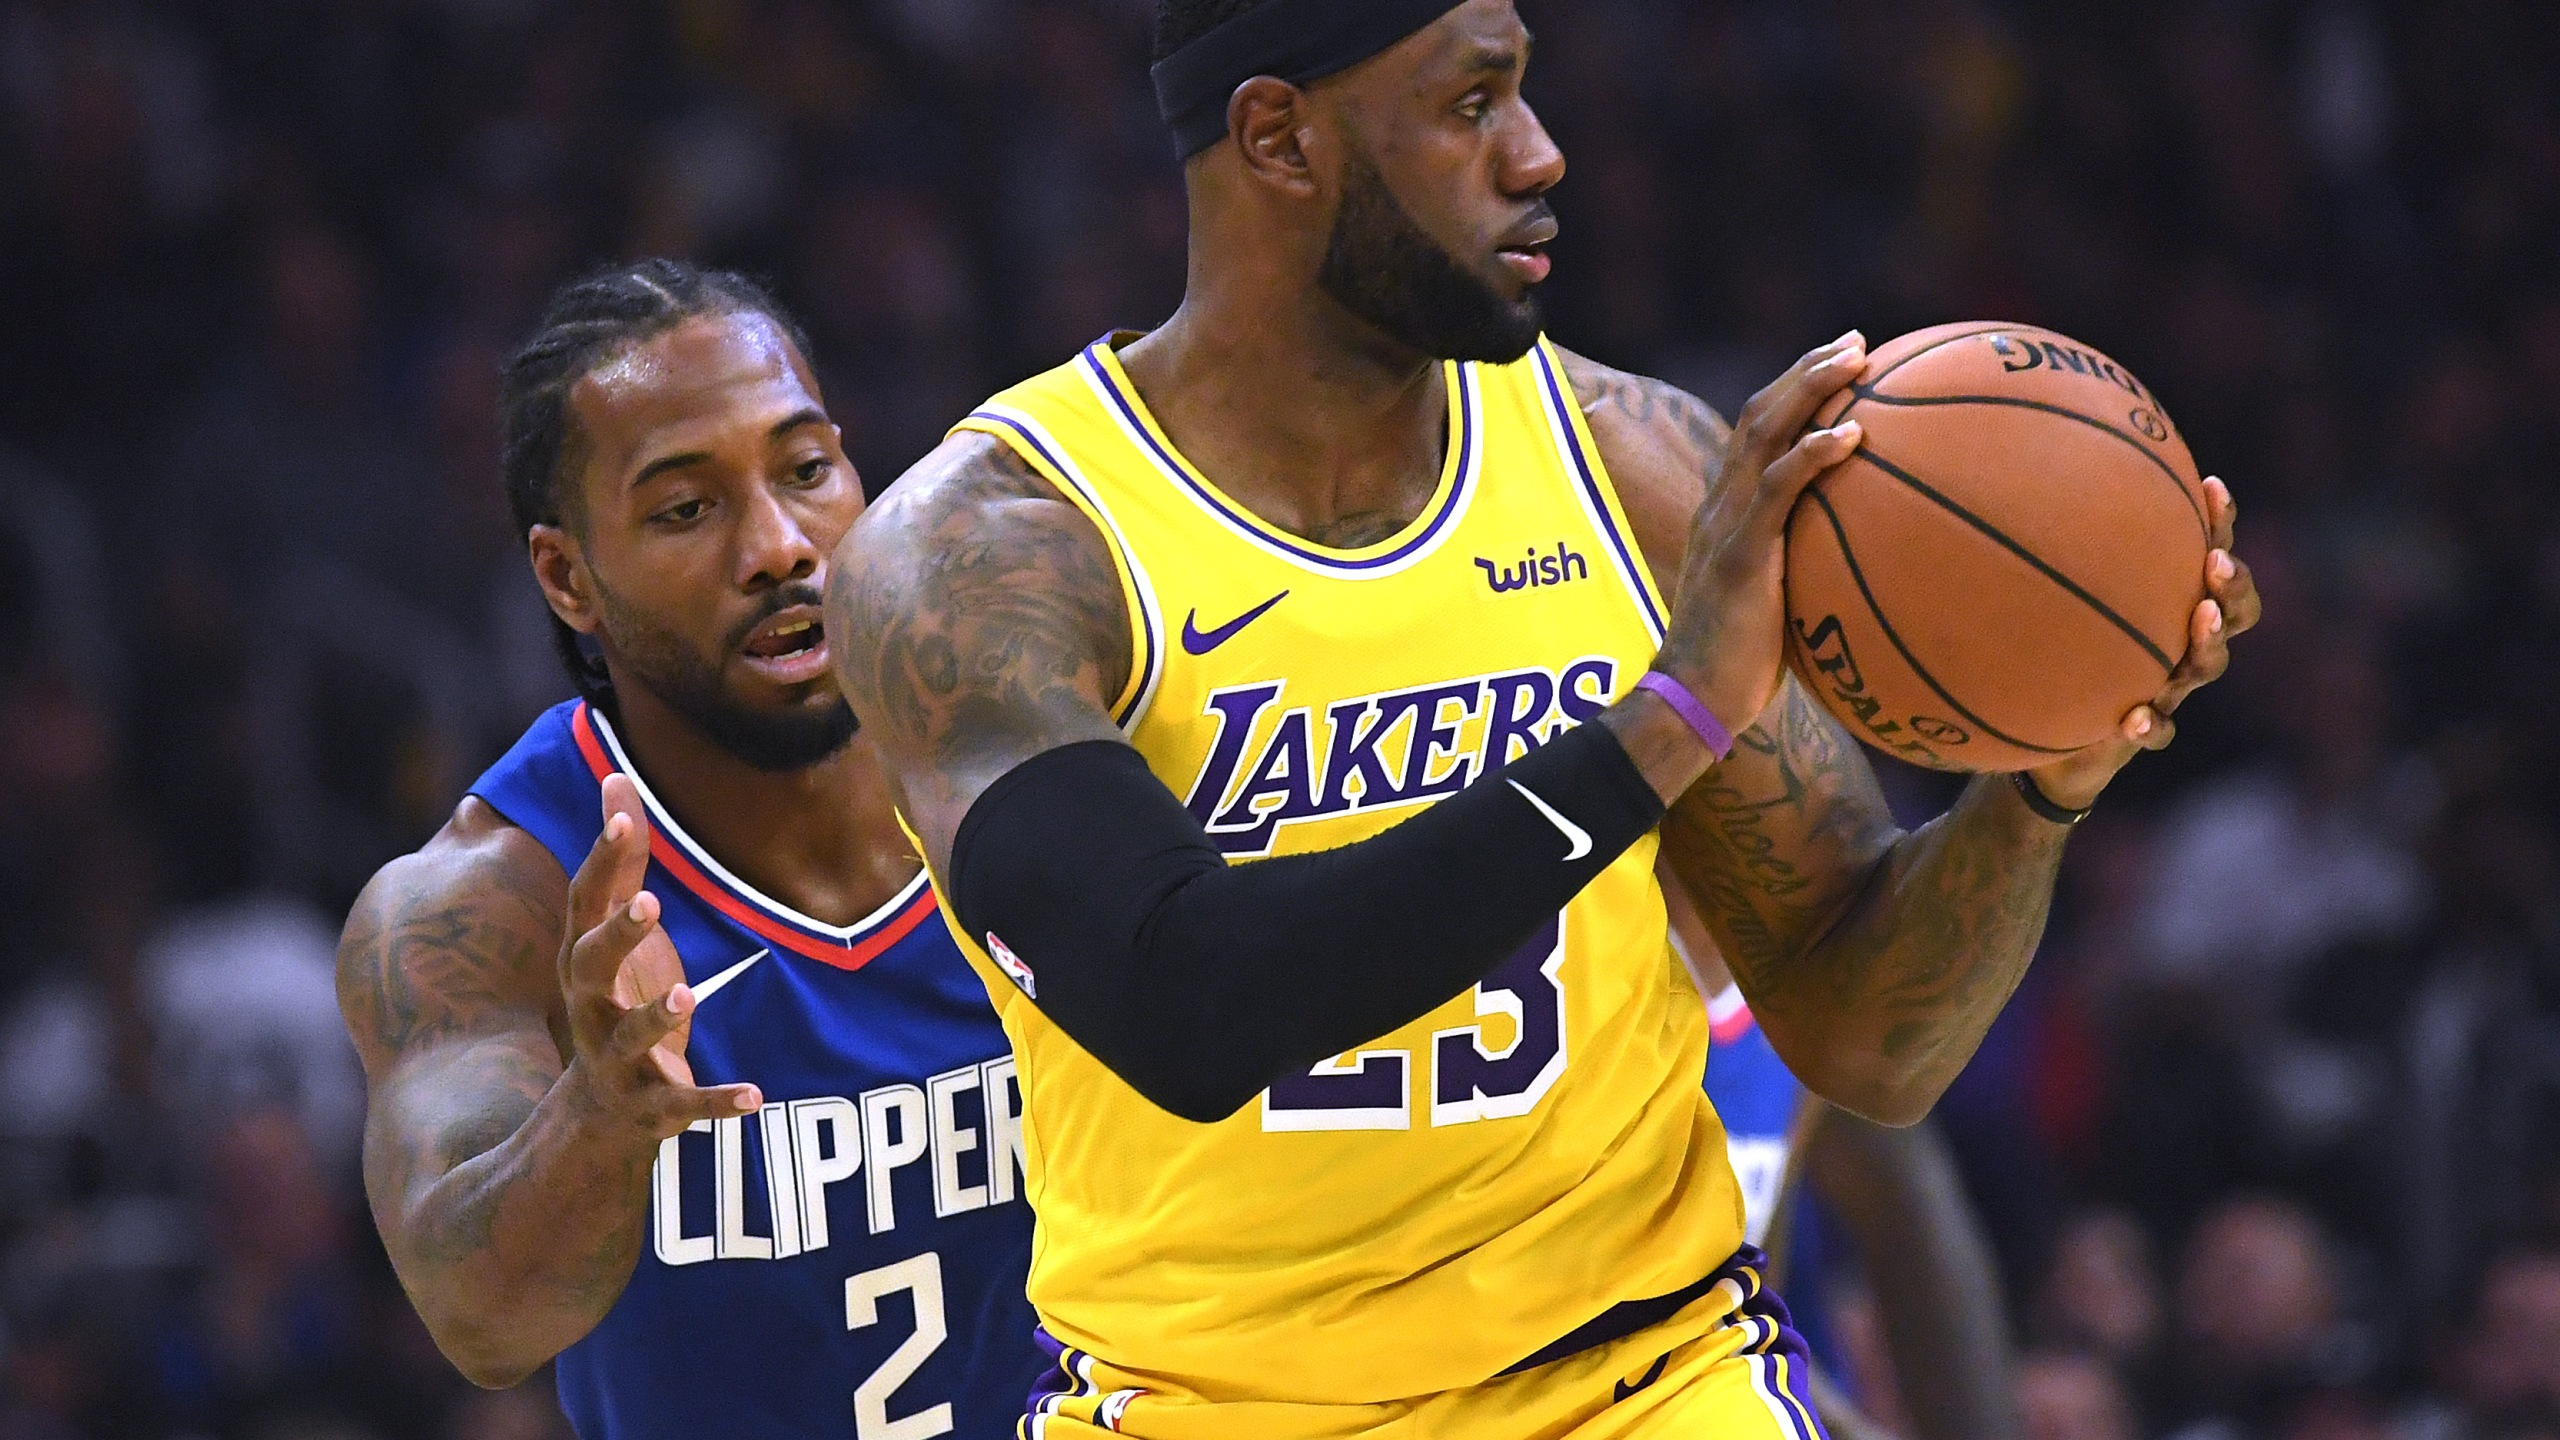 Kawhi Leonard and LeBron James play at Staples Center on Oct. 22, 2019. (Credit: Harry How/Getty Images)